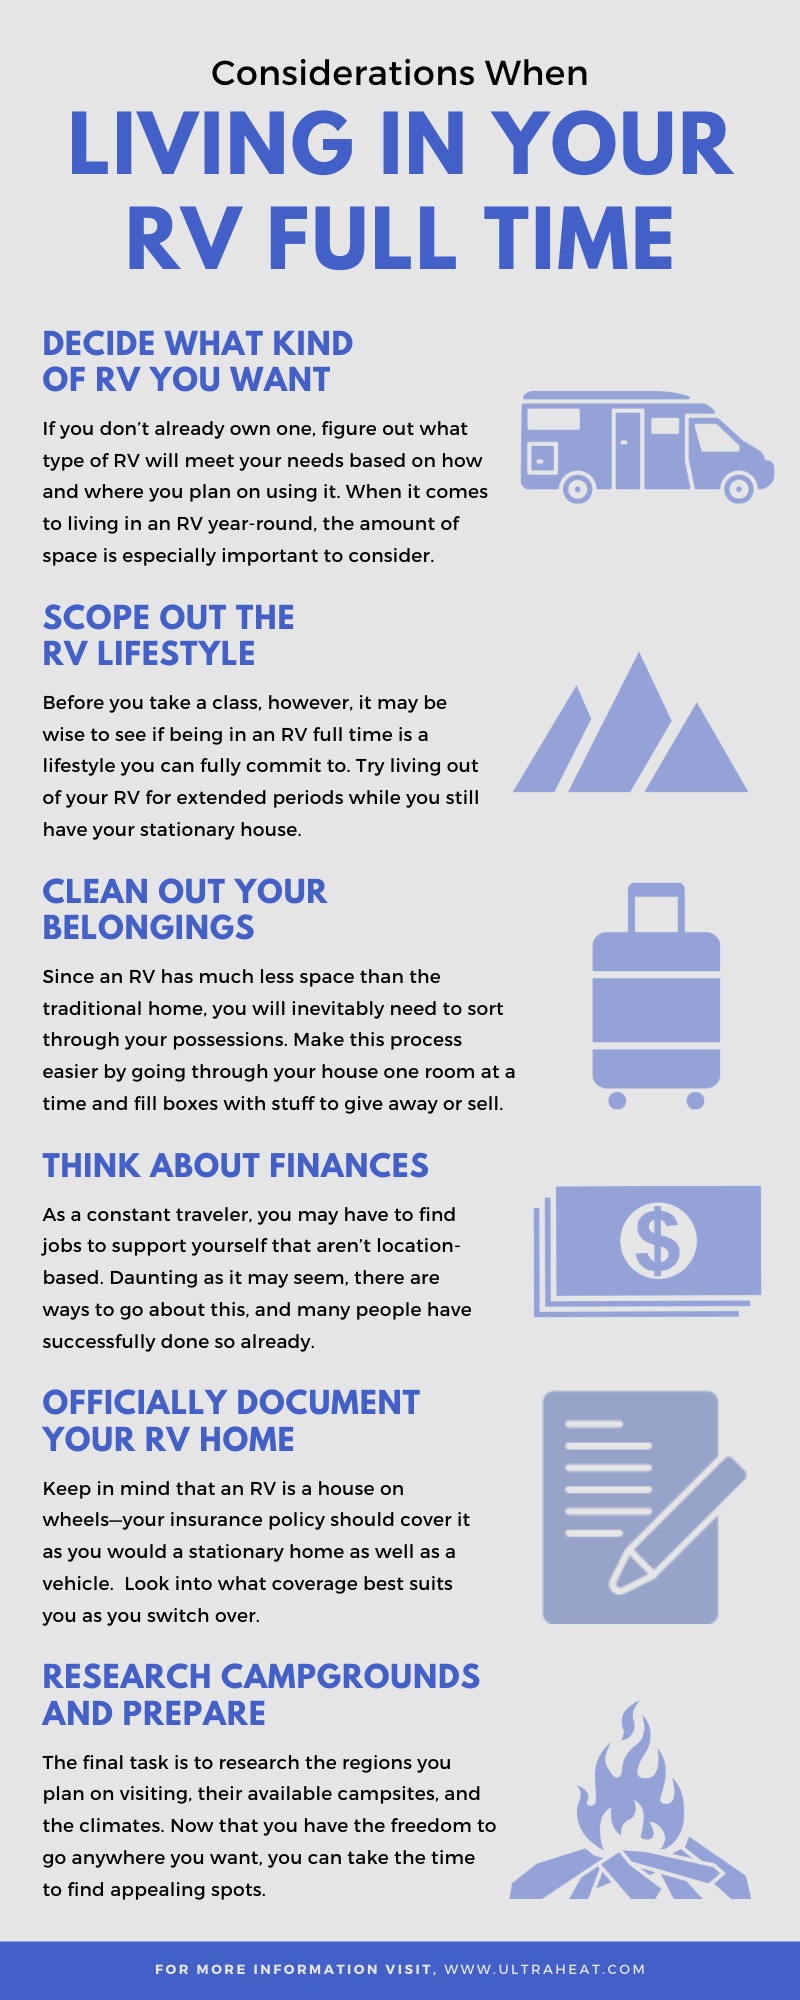 Living in Your RV Full Time